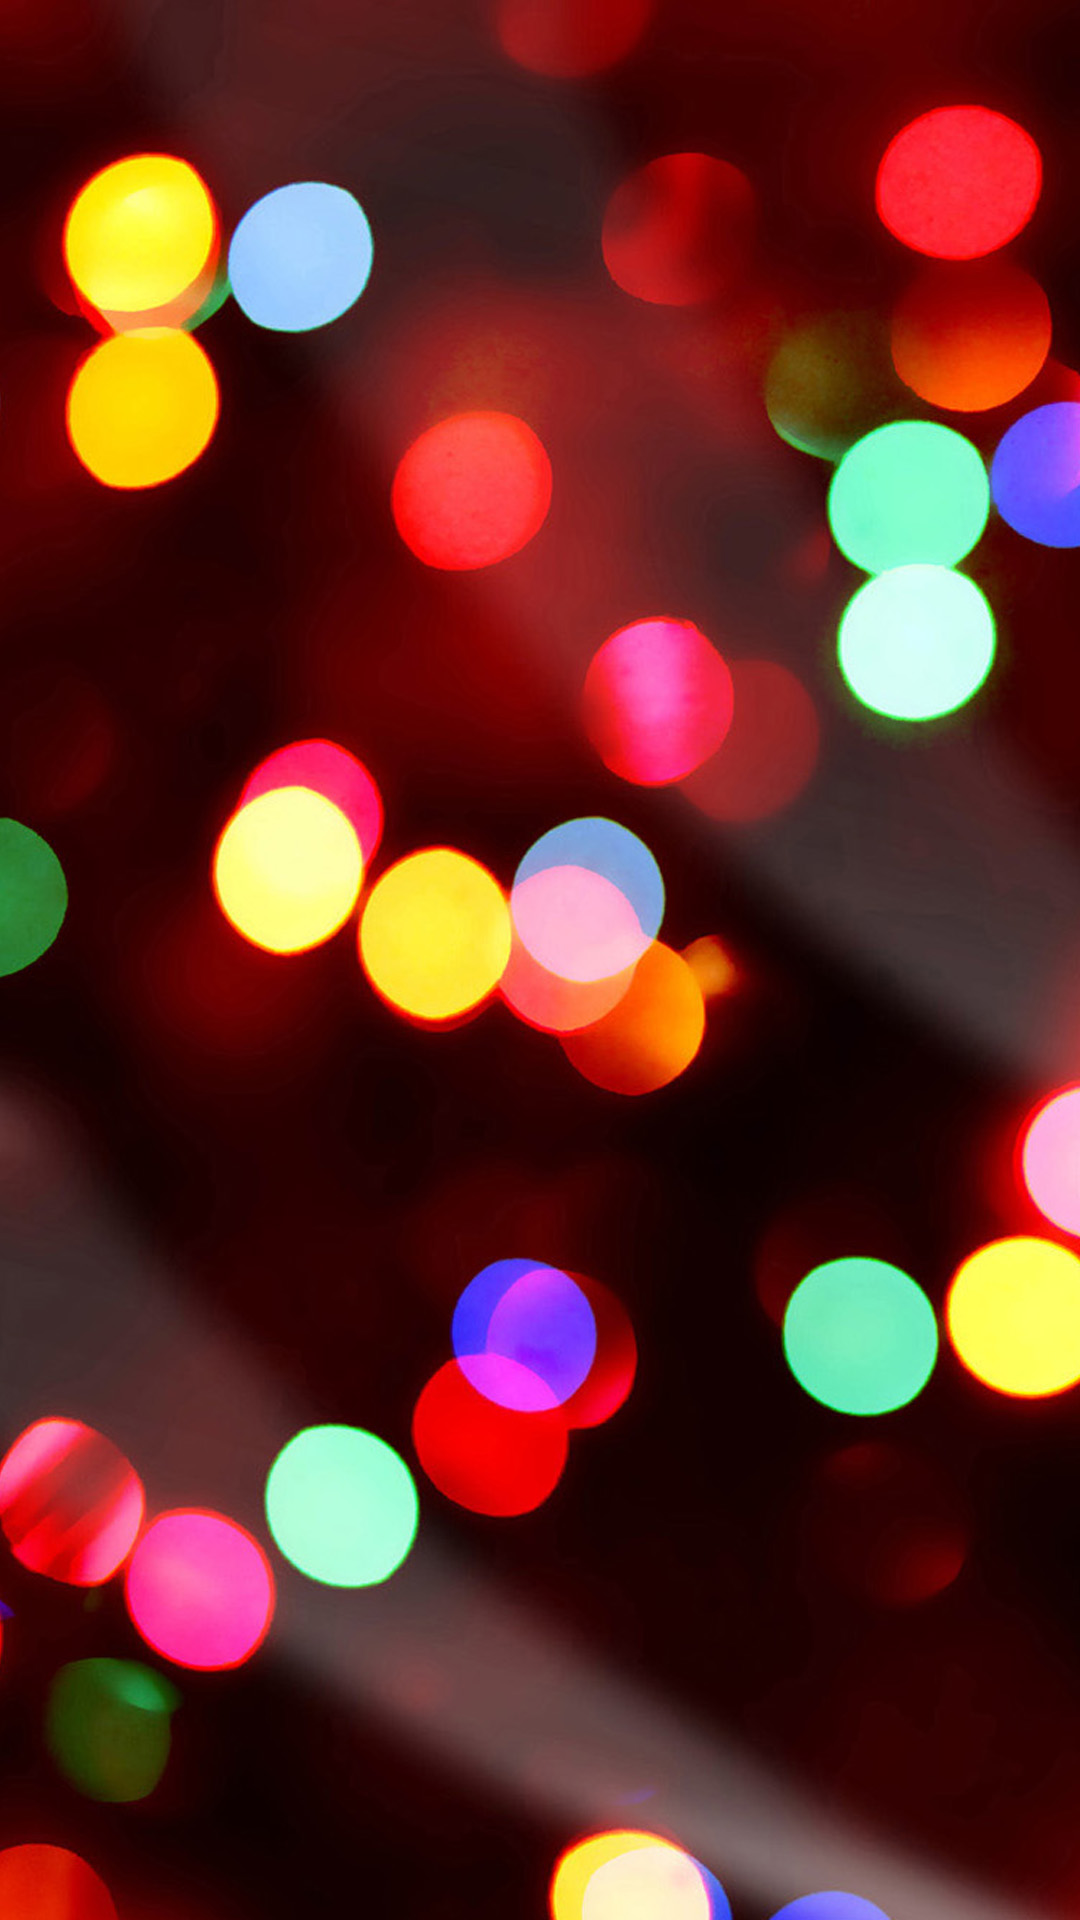 christmas lights bokeh android wallpaper android hd wallpapers christmas lights bokeh android